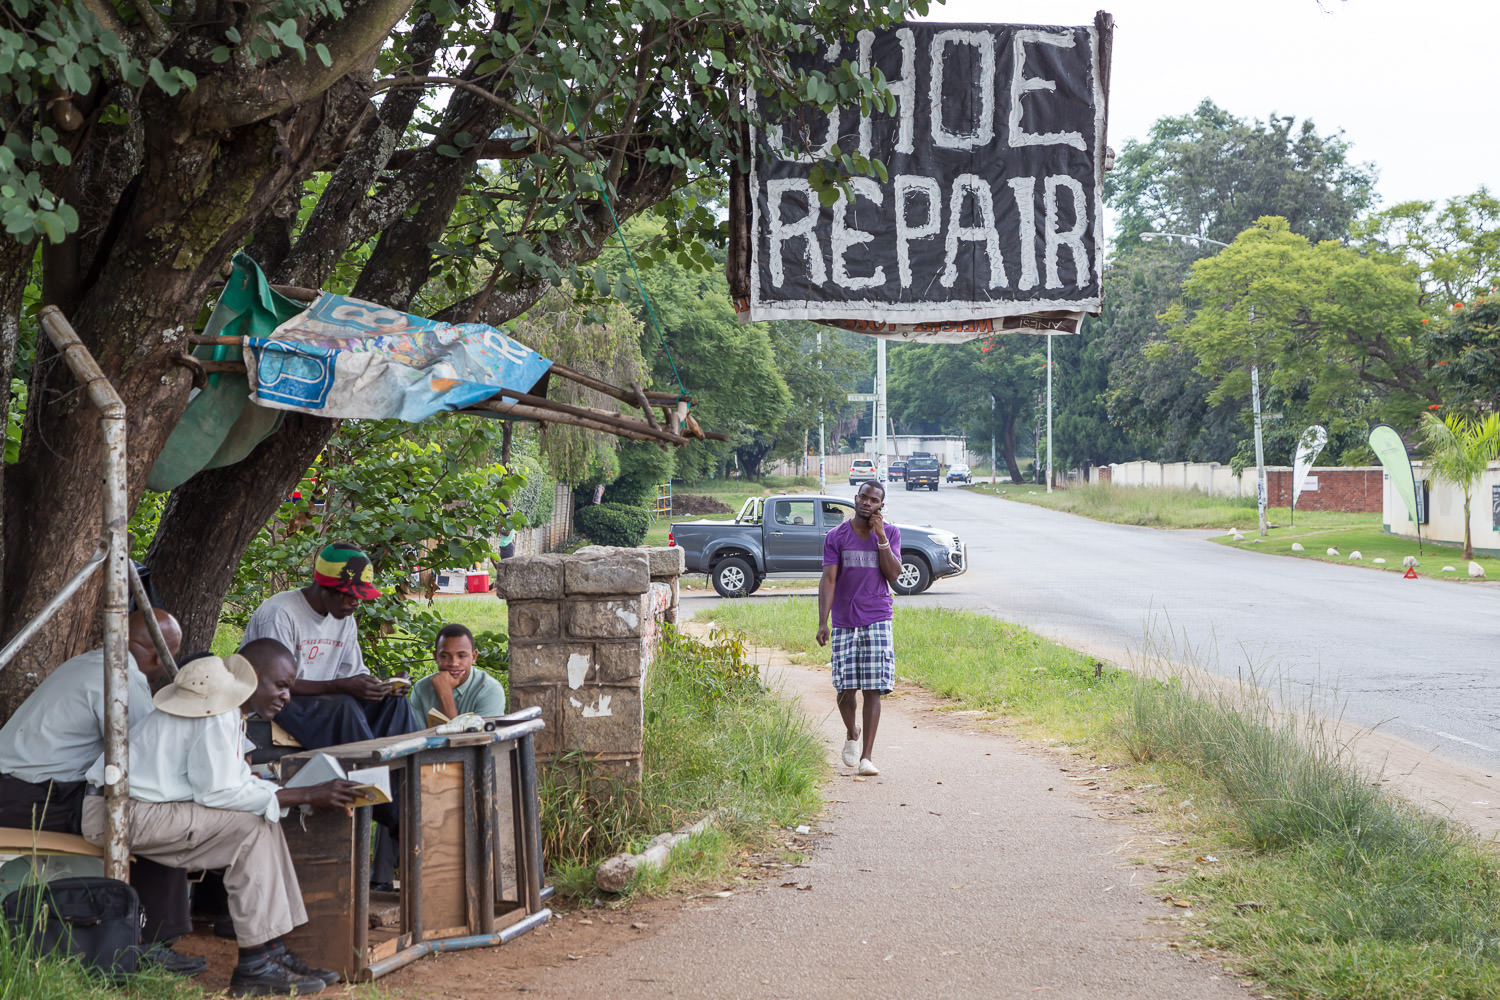 Unemployment in Zimbabwe has been unverified but estimates have been upwards of 75%.